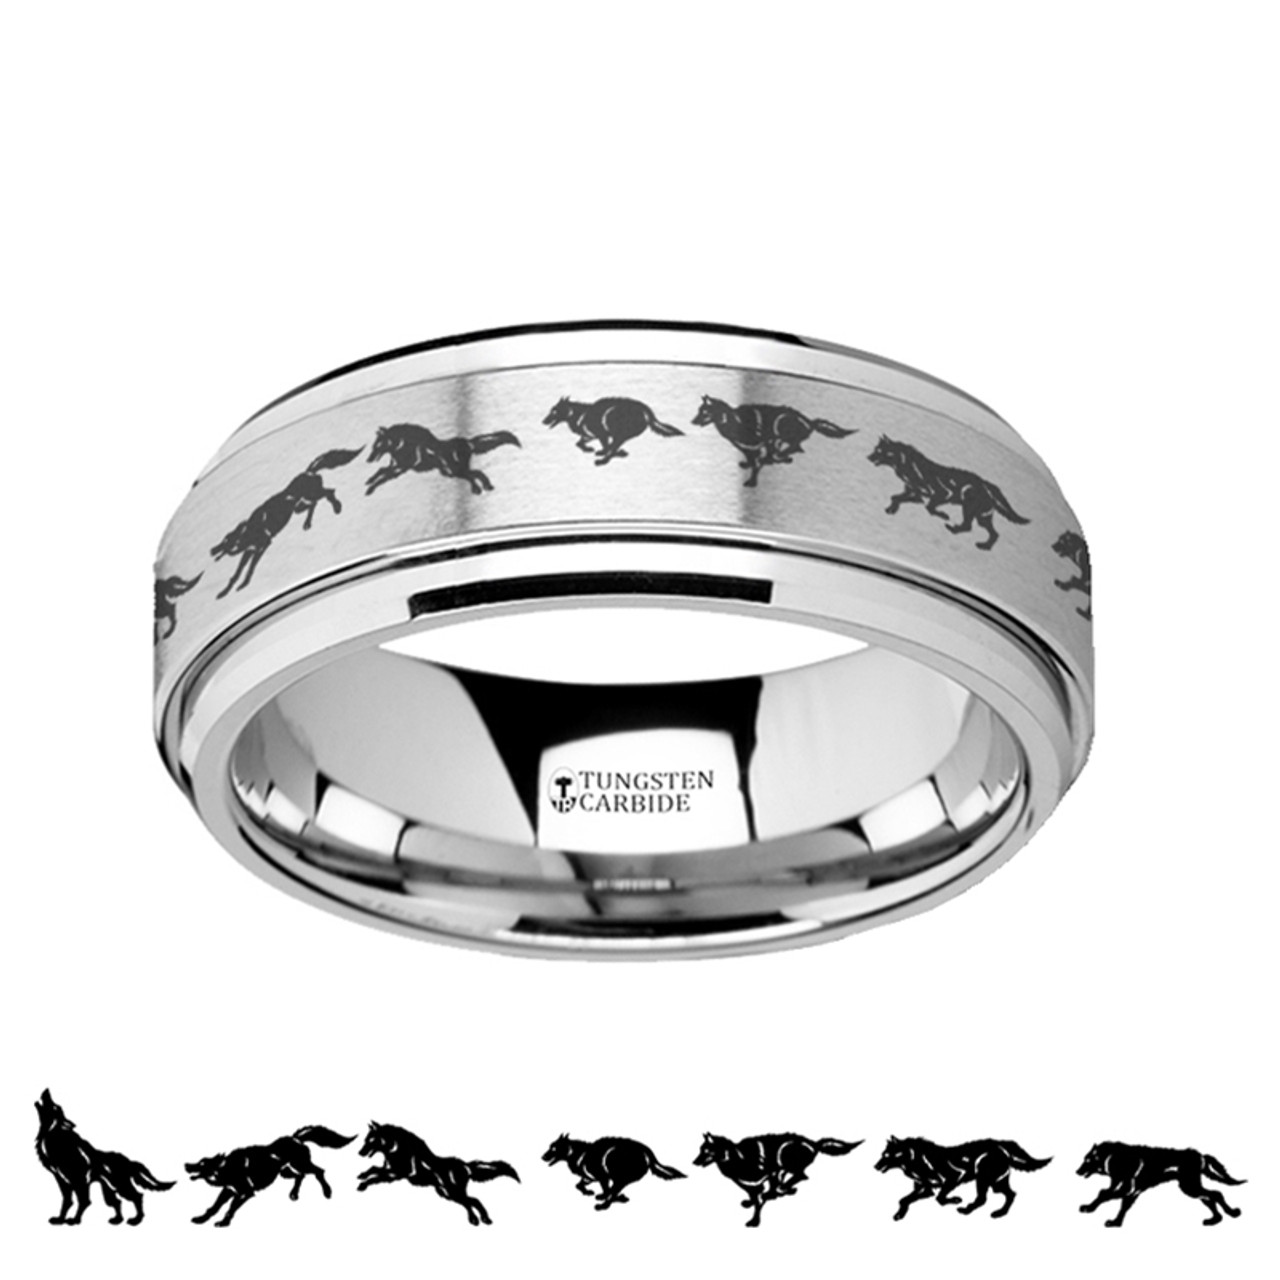 Ambrosia Spinning Running Wolf Engraved Tungsten Carbide Wedding Band